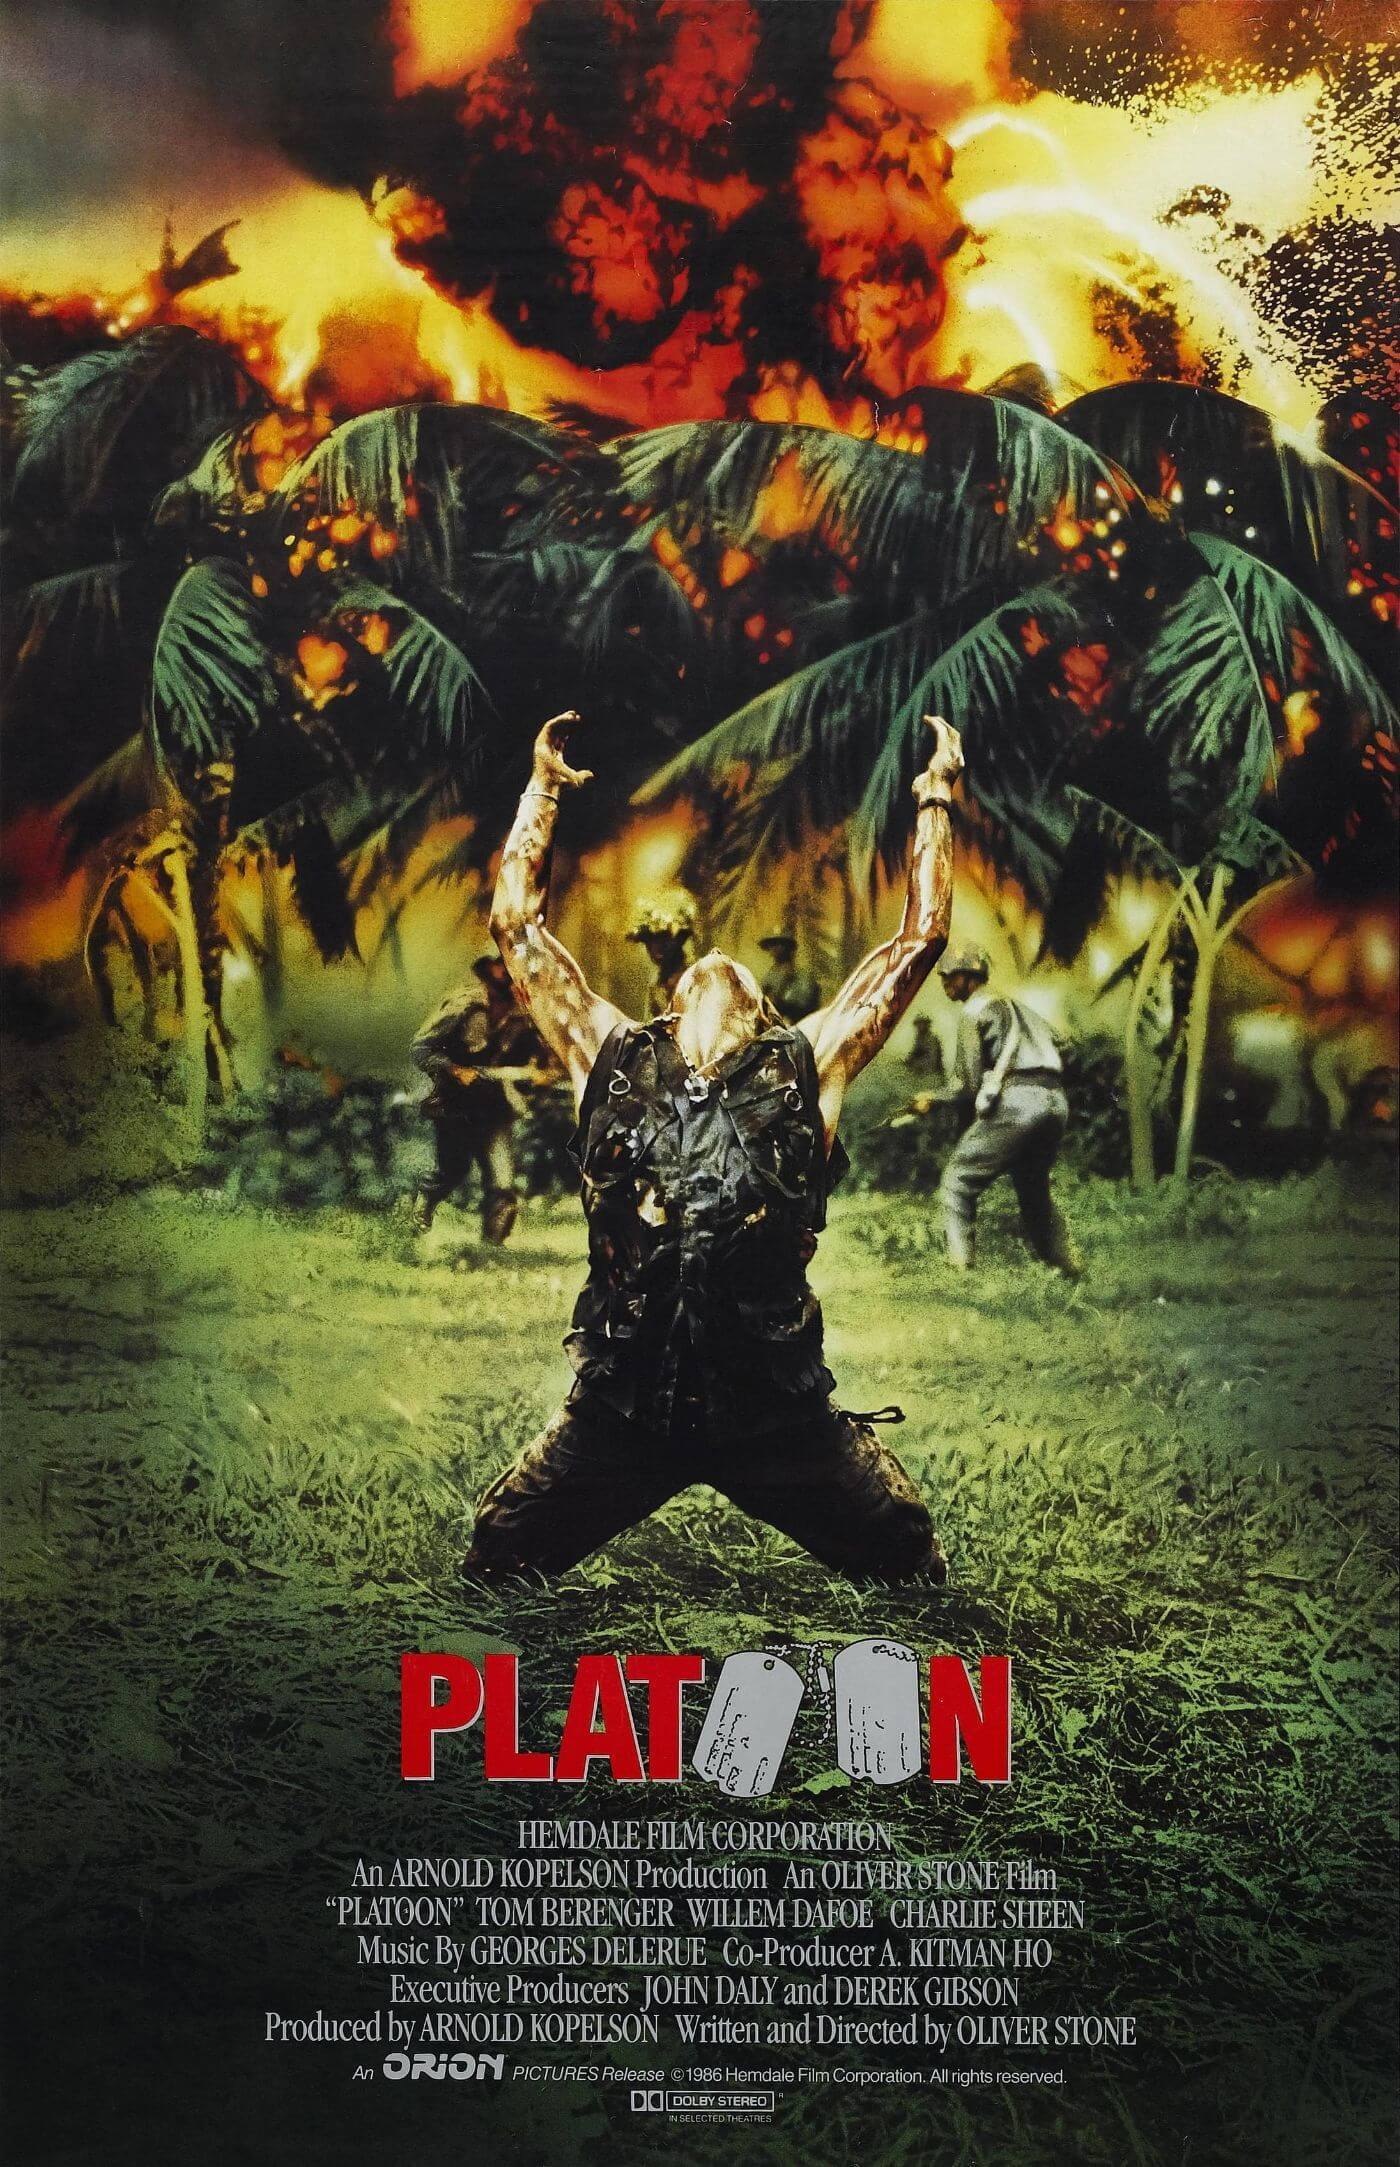 Platoon - Oliver Stone Directed Hollywood Vietnam War Classic - Movie Poster - Large Art Prints